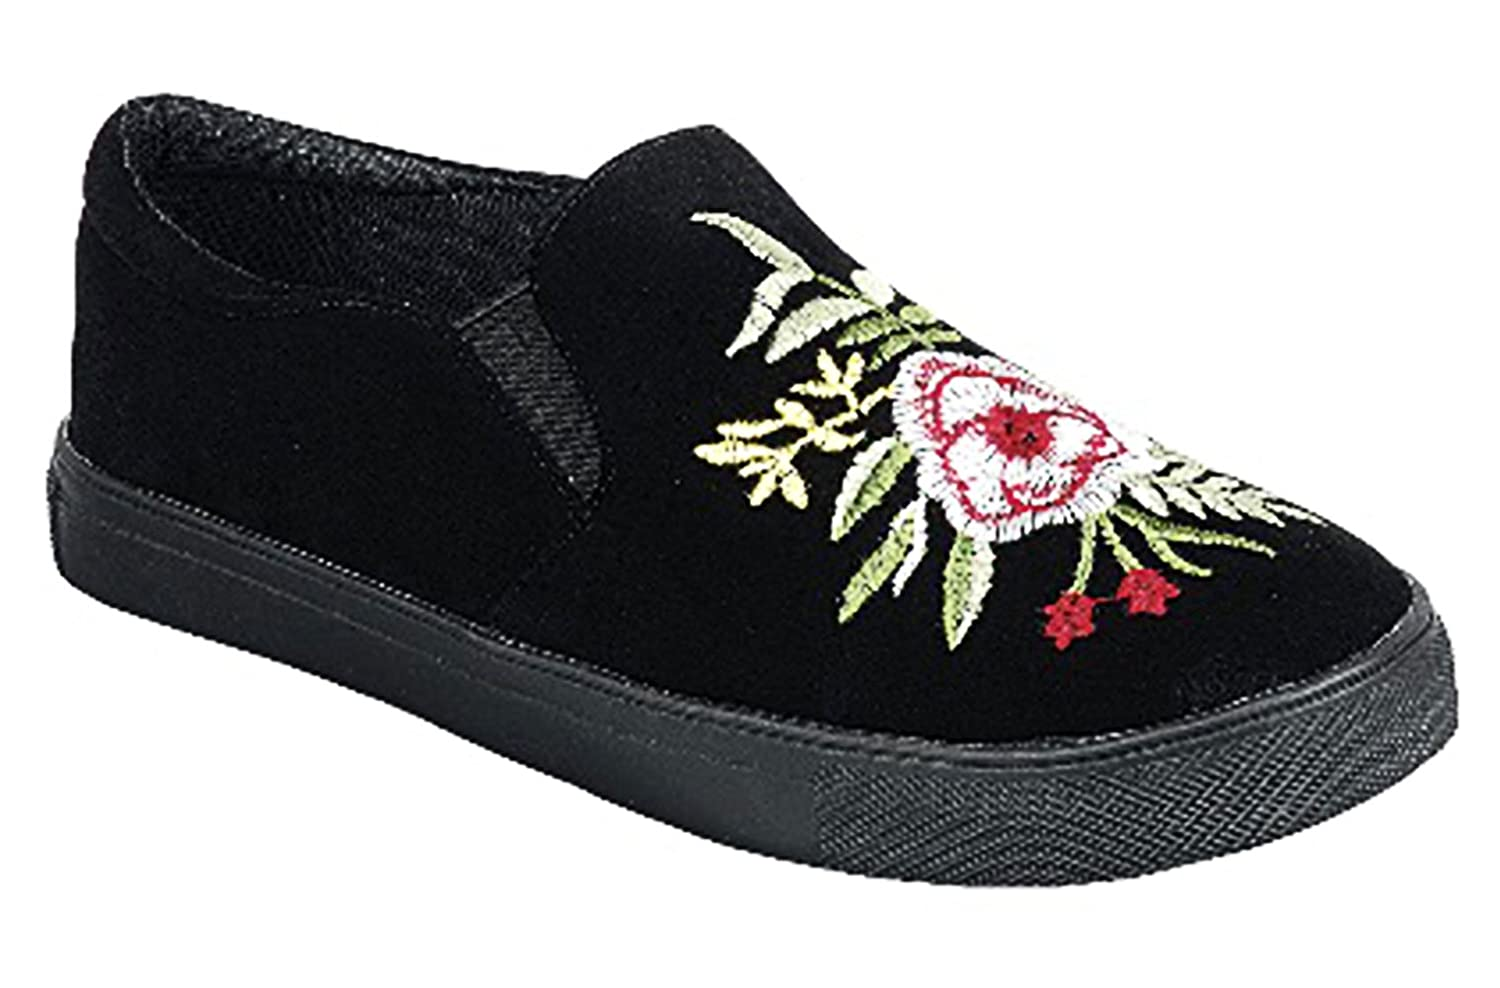 TravelNut Back to School Sale Kenna Classic Slip On Casual Skateboard Sneakers for Women (Assorted Colors) B0796S3ZB7 7 M US|Flower Kenna Black